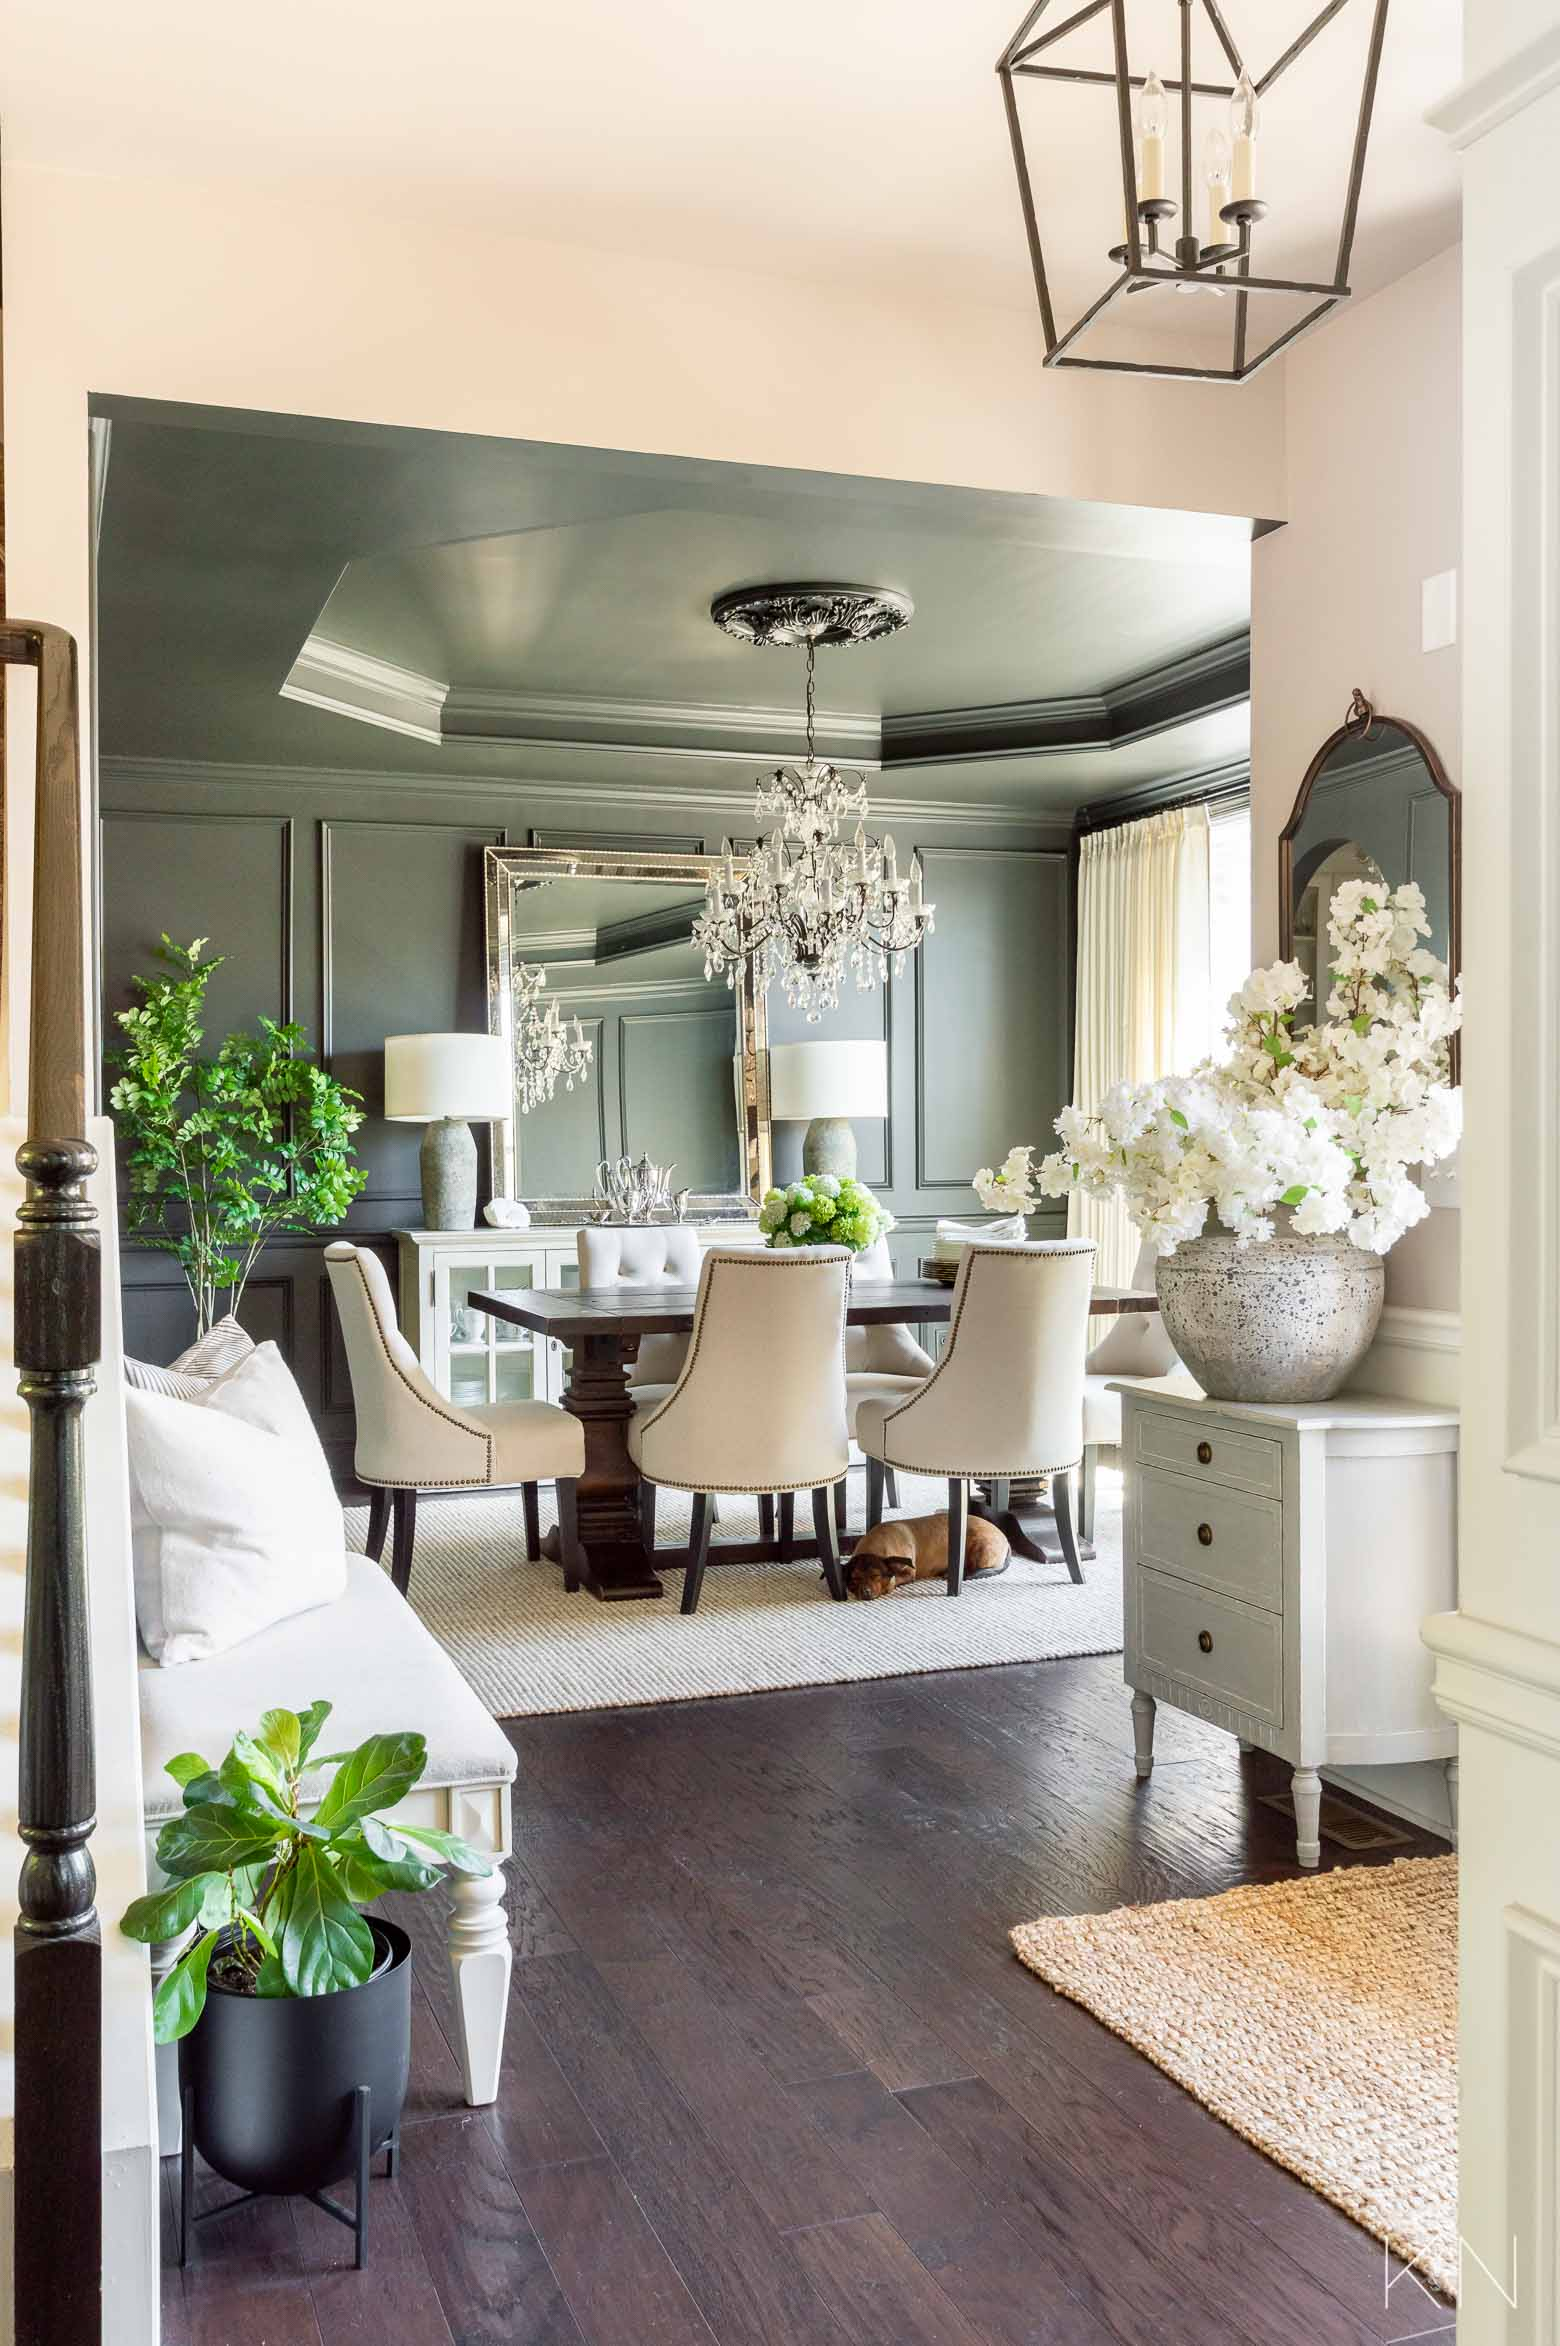 Transitional Dining Room Makeover Reveal! From Blue to Sherwin Williams Iron Ore Charcoal Black